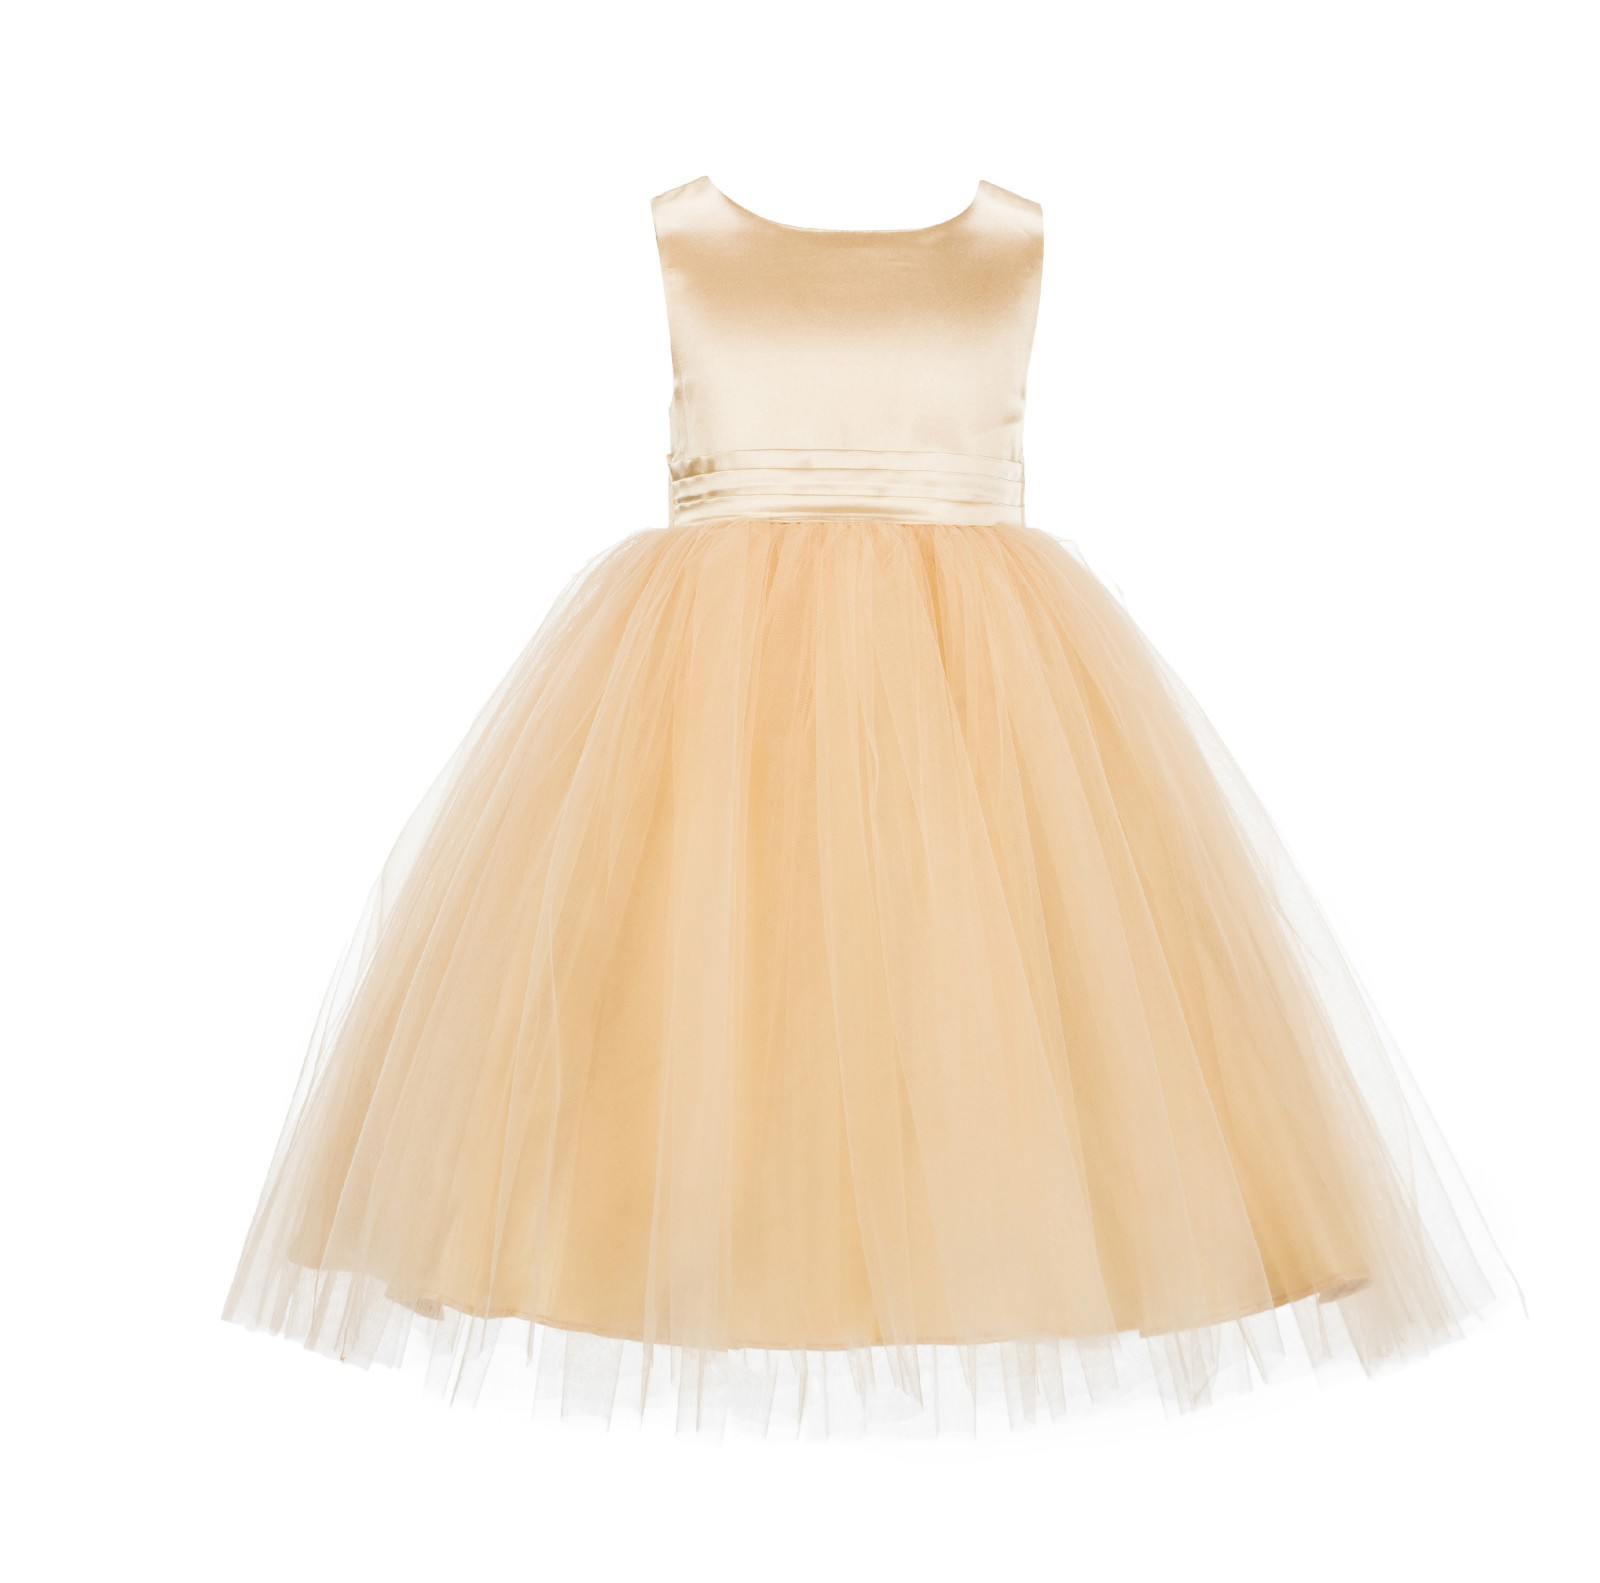 Gold Satin Tulle Flower Girl Dress Toddler Pageant 012B